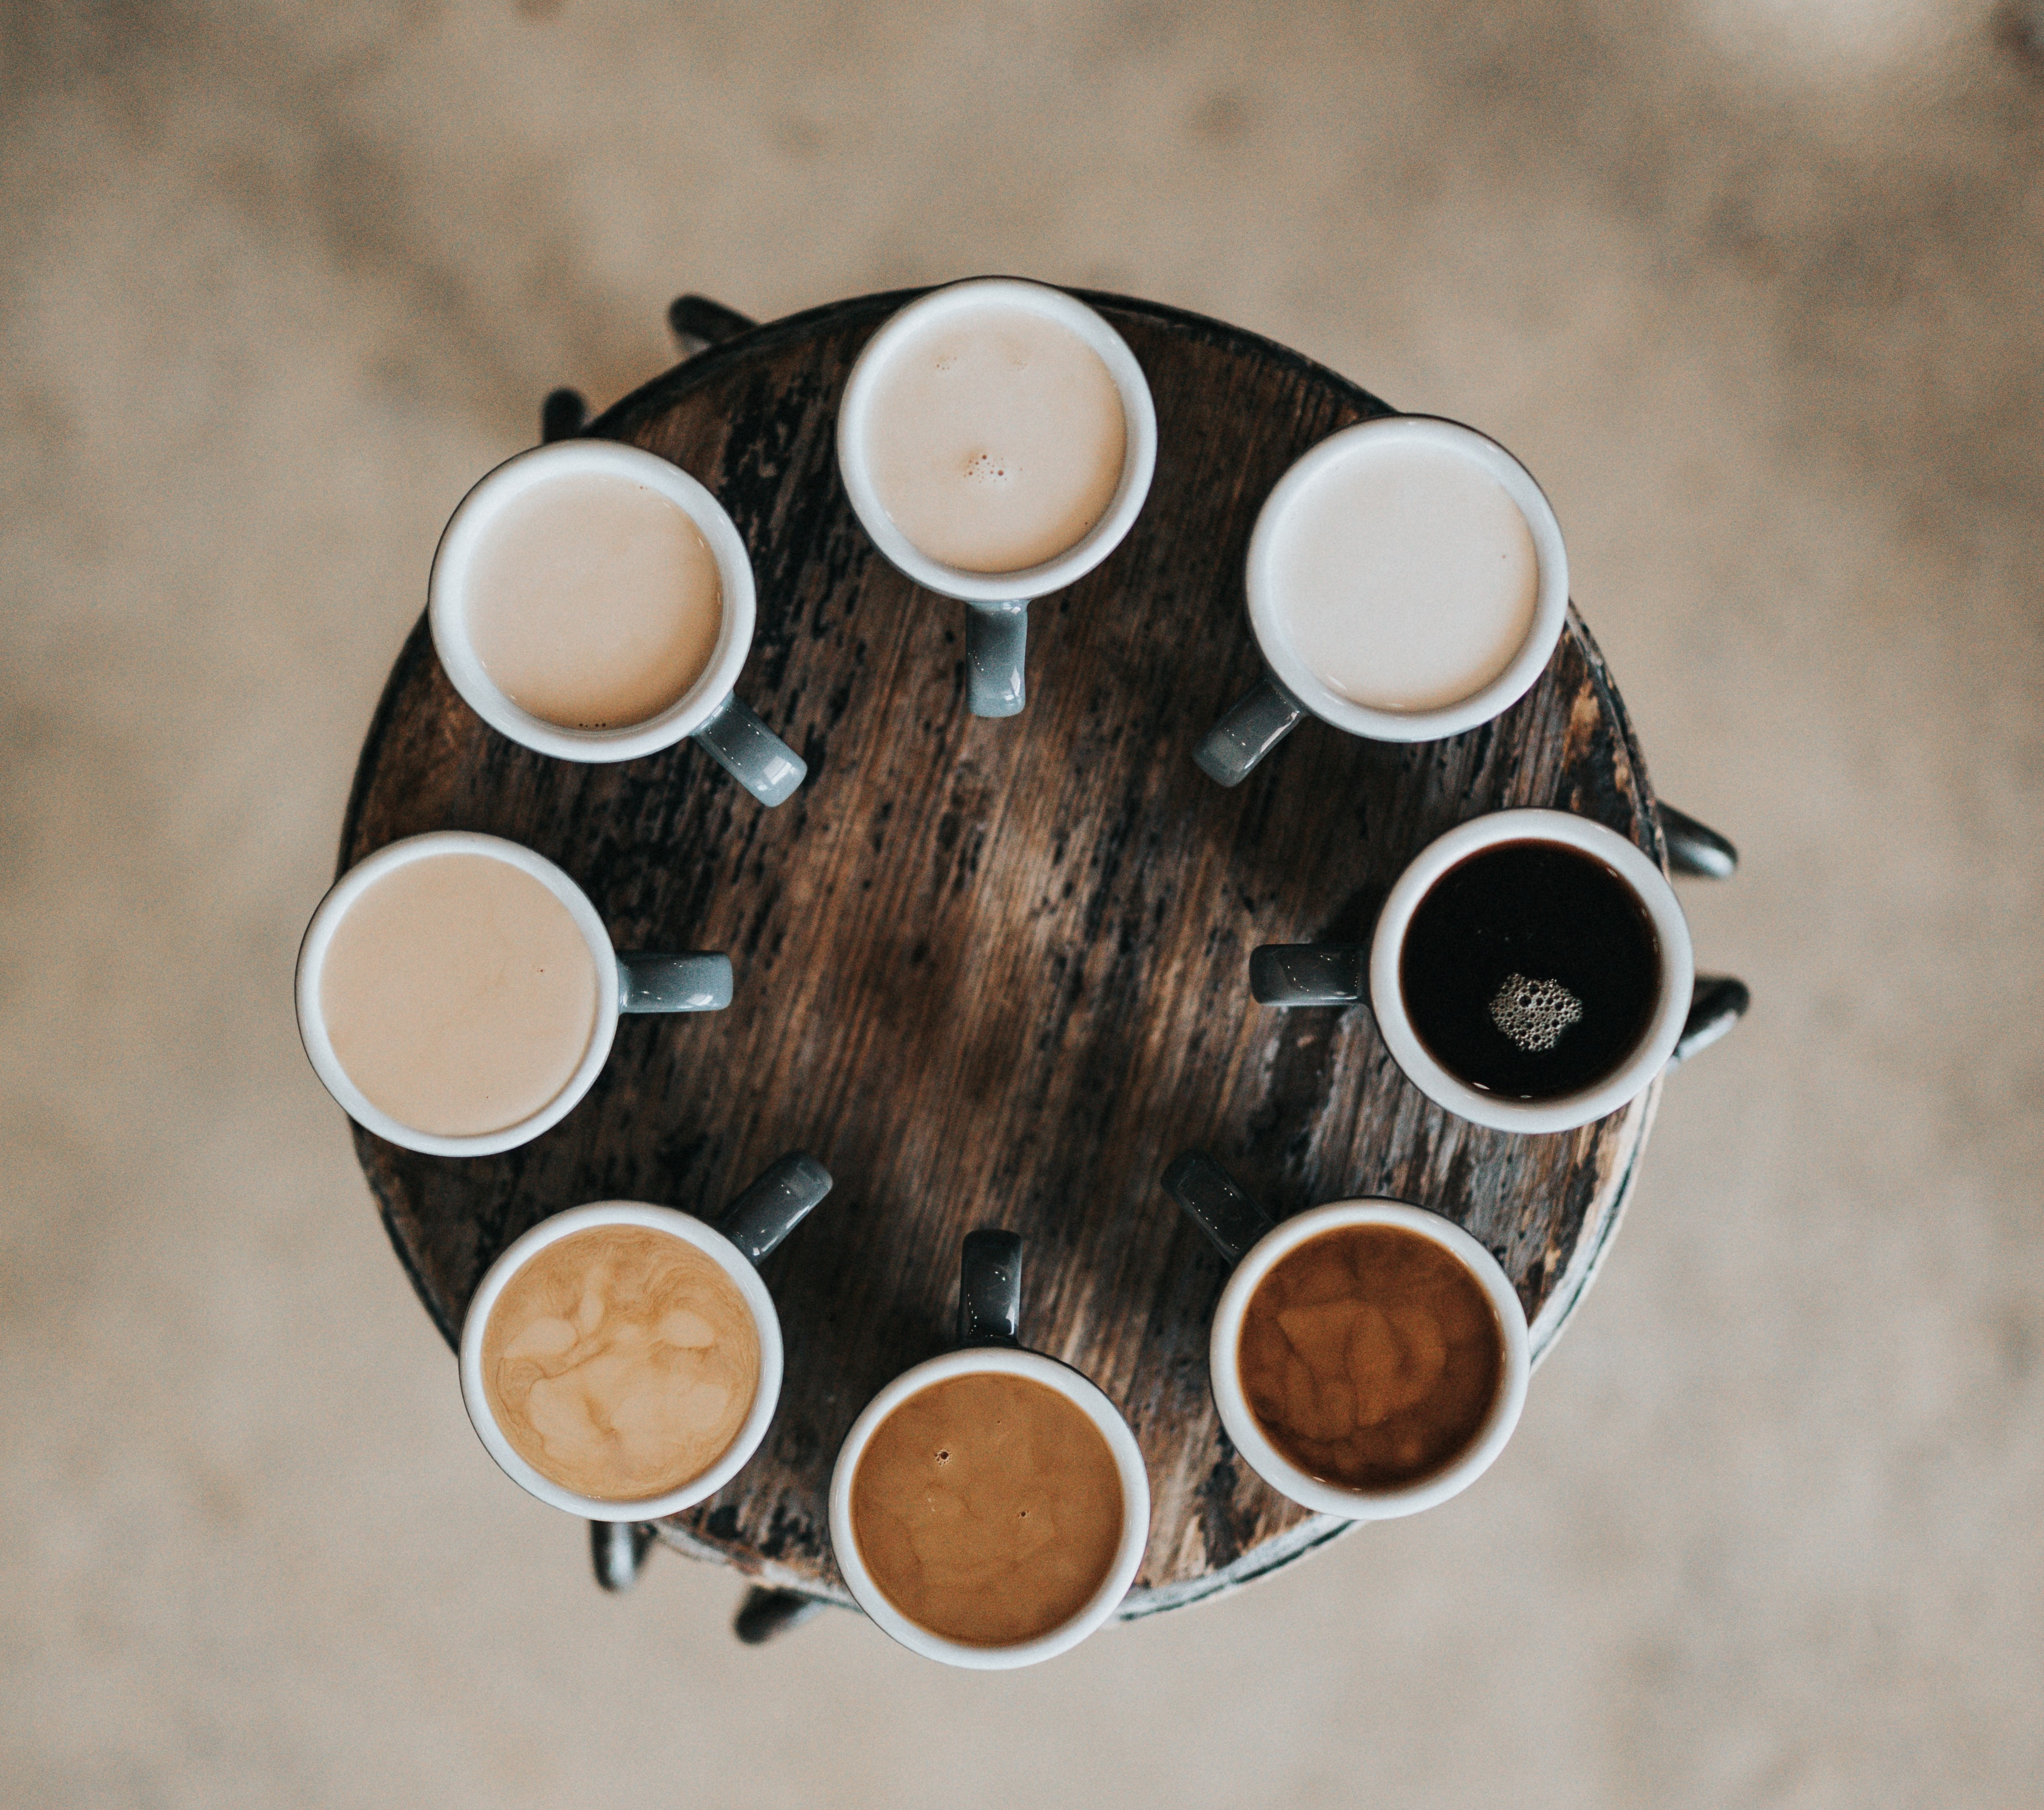 Cups of coffee set out in a circle, c. Nathan Dumlao, Unsplash